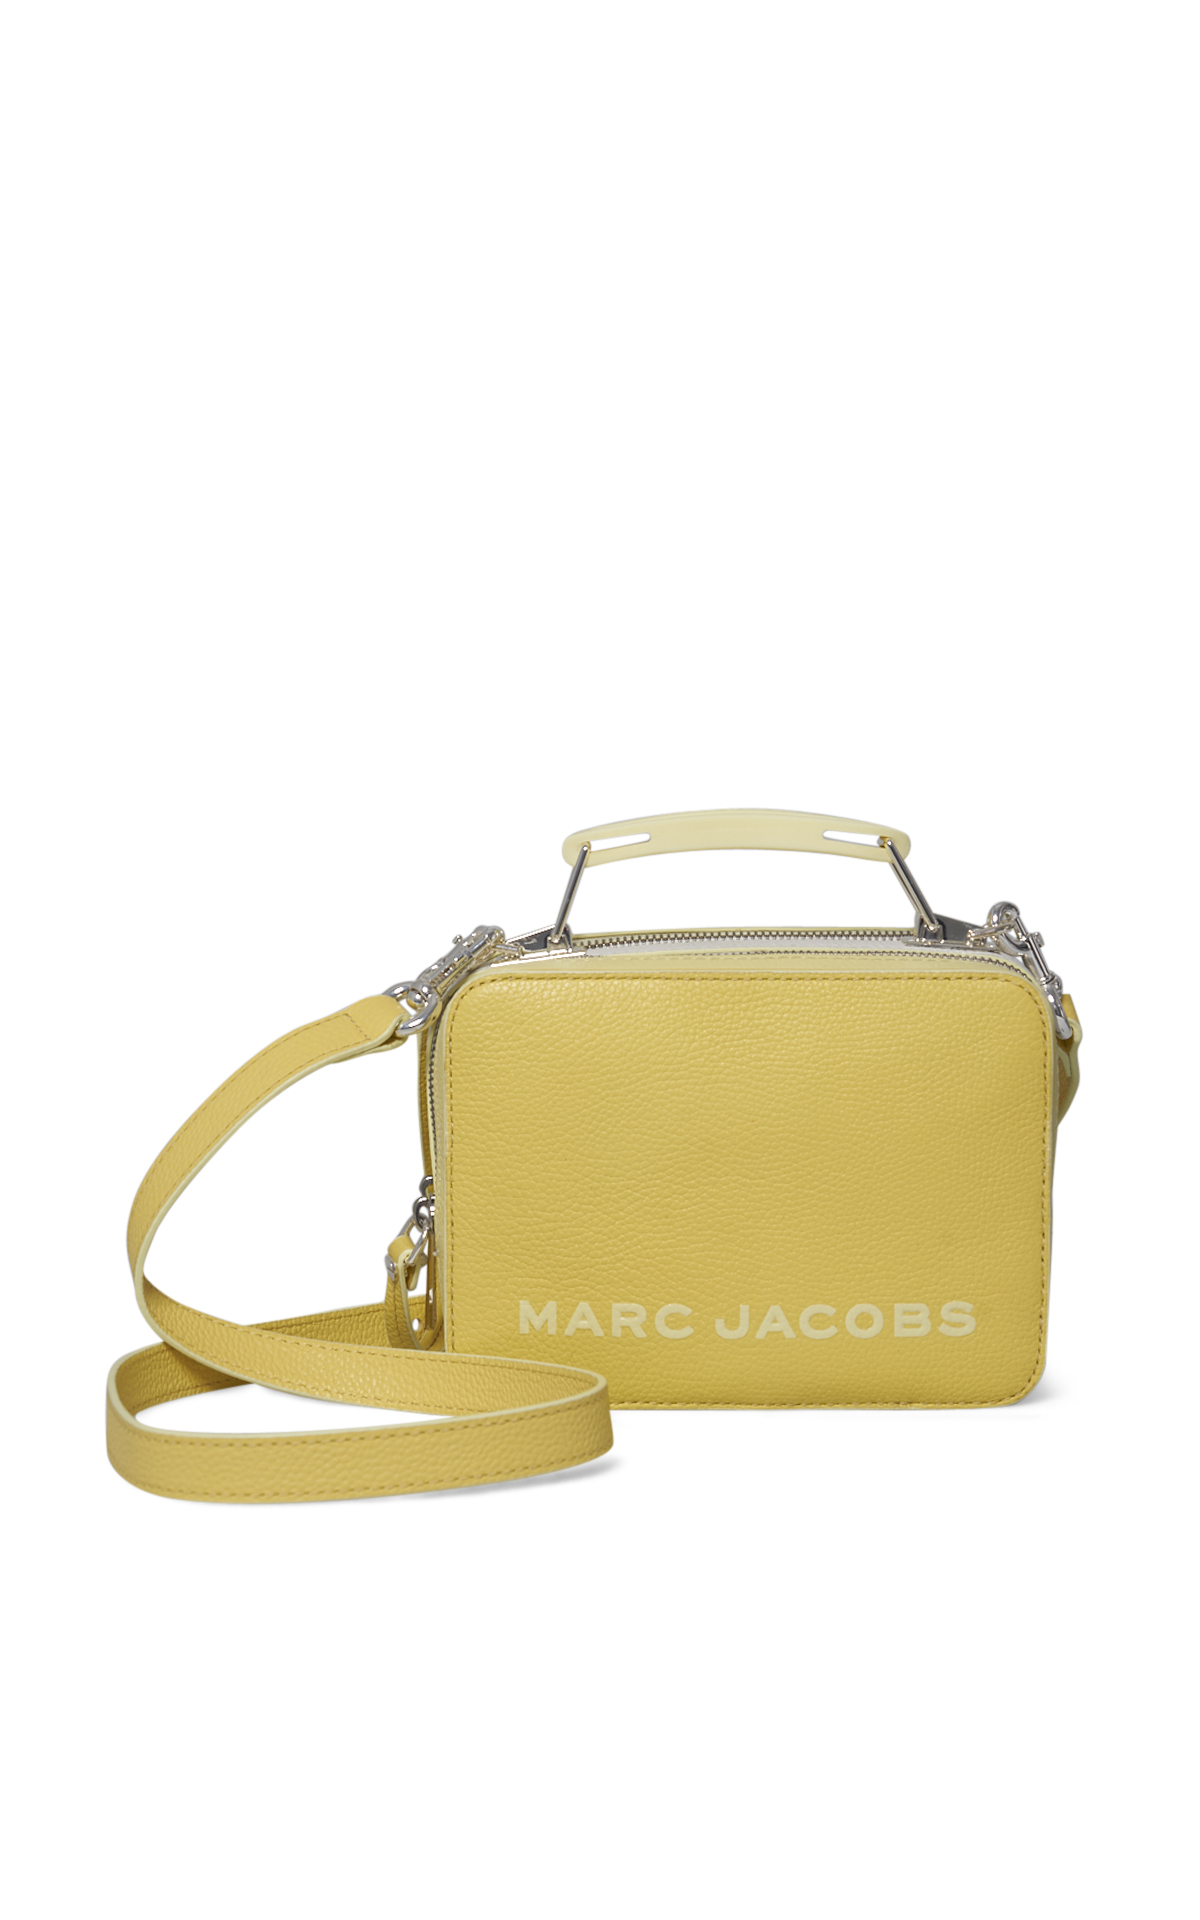 Marc Jacobs Sac The Box 20 jaune*